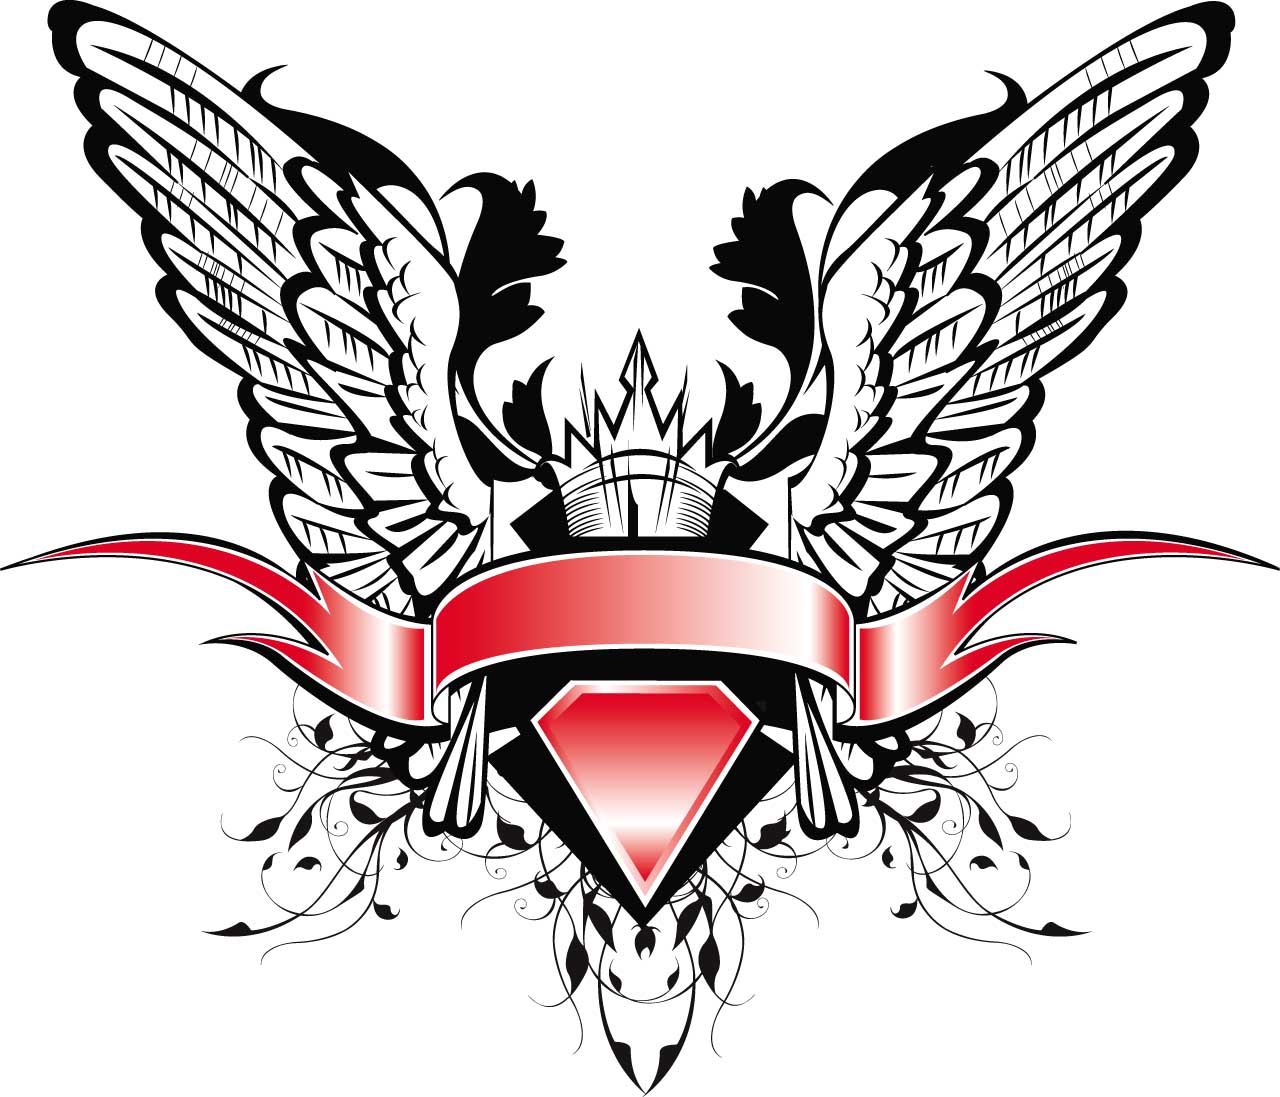 Wings Vector Png at GetDrawings com | Free for personal use